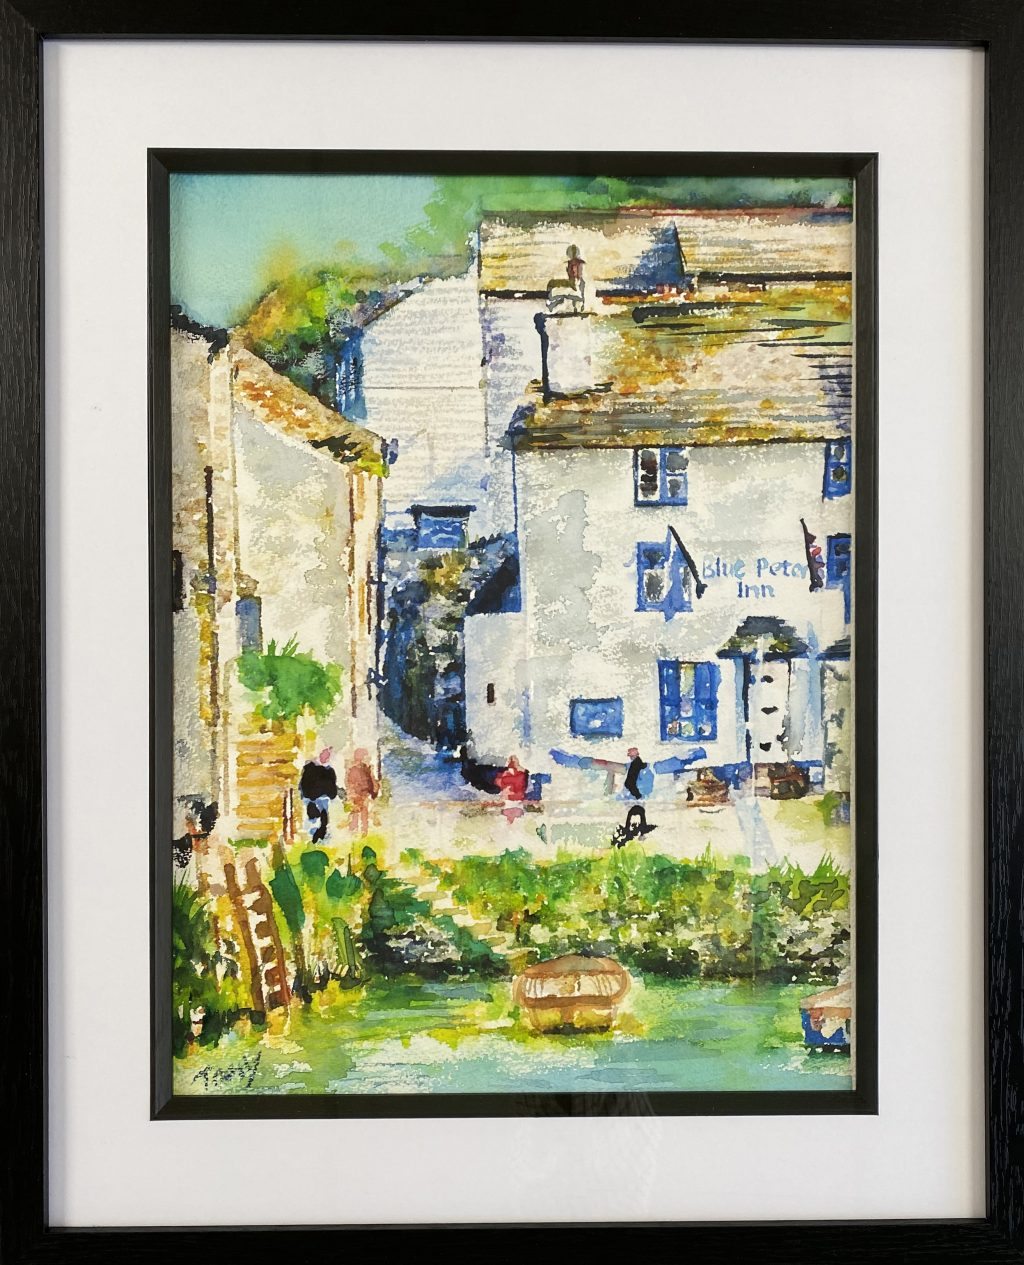 Framed picture of an old-fashioned inn called The Blue Peter in the background, while in the foreground steps lead down a stone jetty to water where a wooden boat is bobbing.